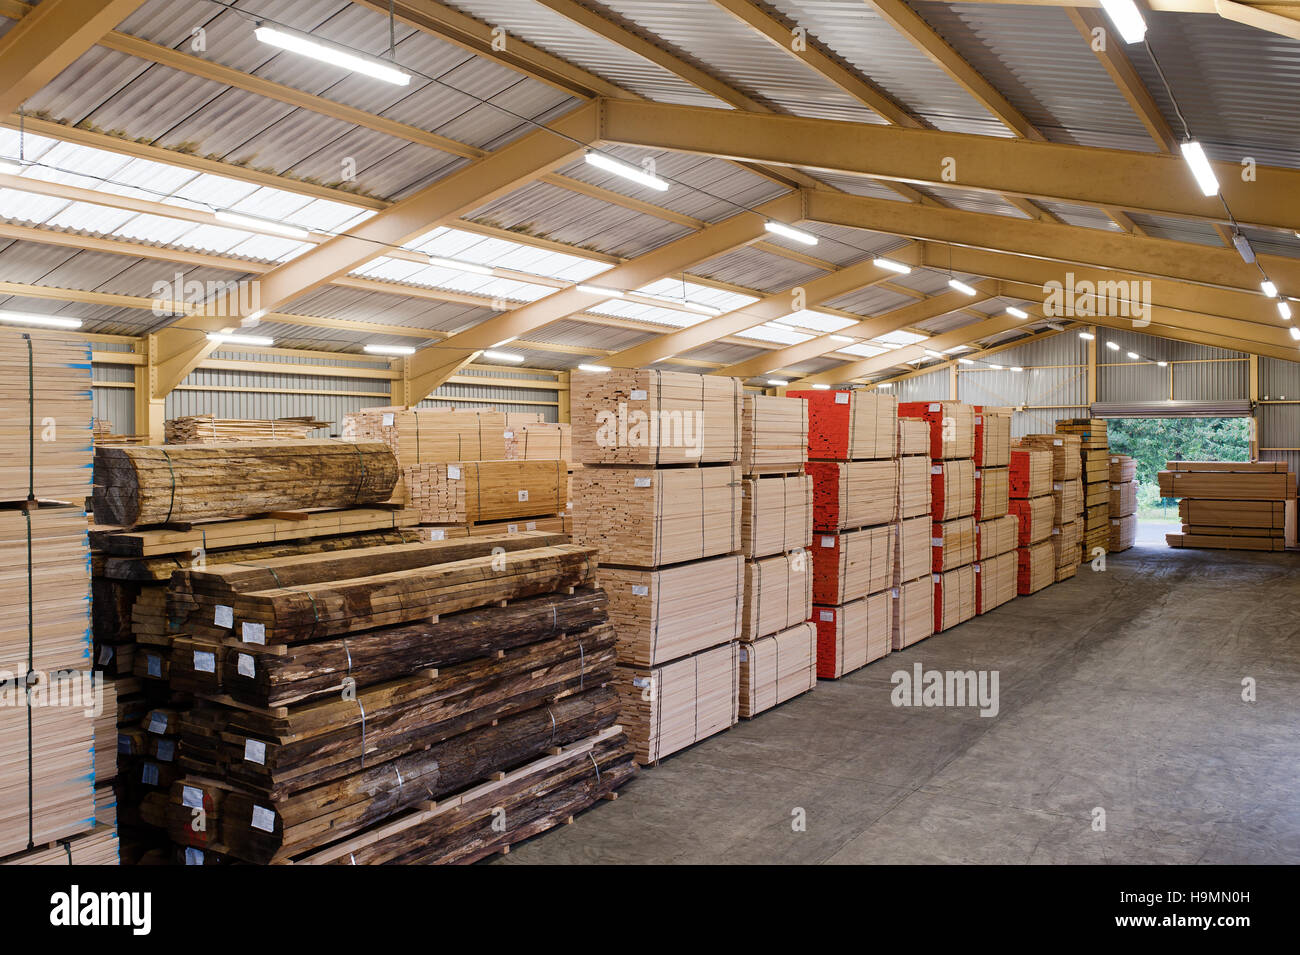 Wood storage warehouse in timber processing plant, Templin, Uckermark district of Brandenurg, Germany. - Stock Image